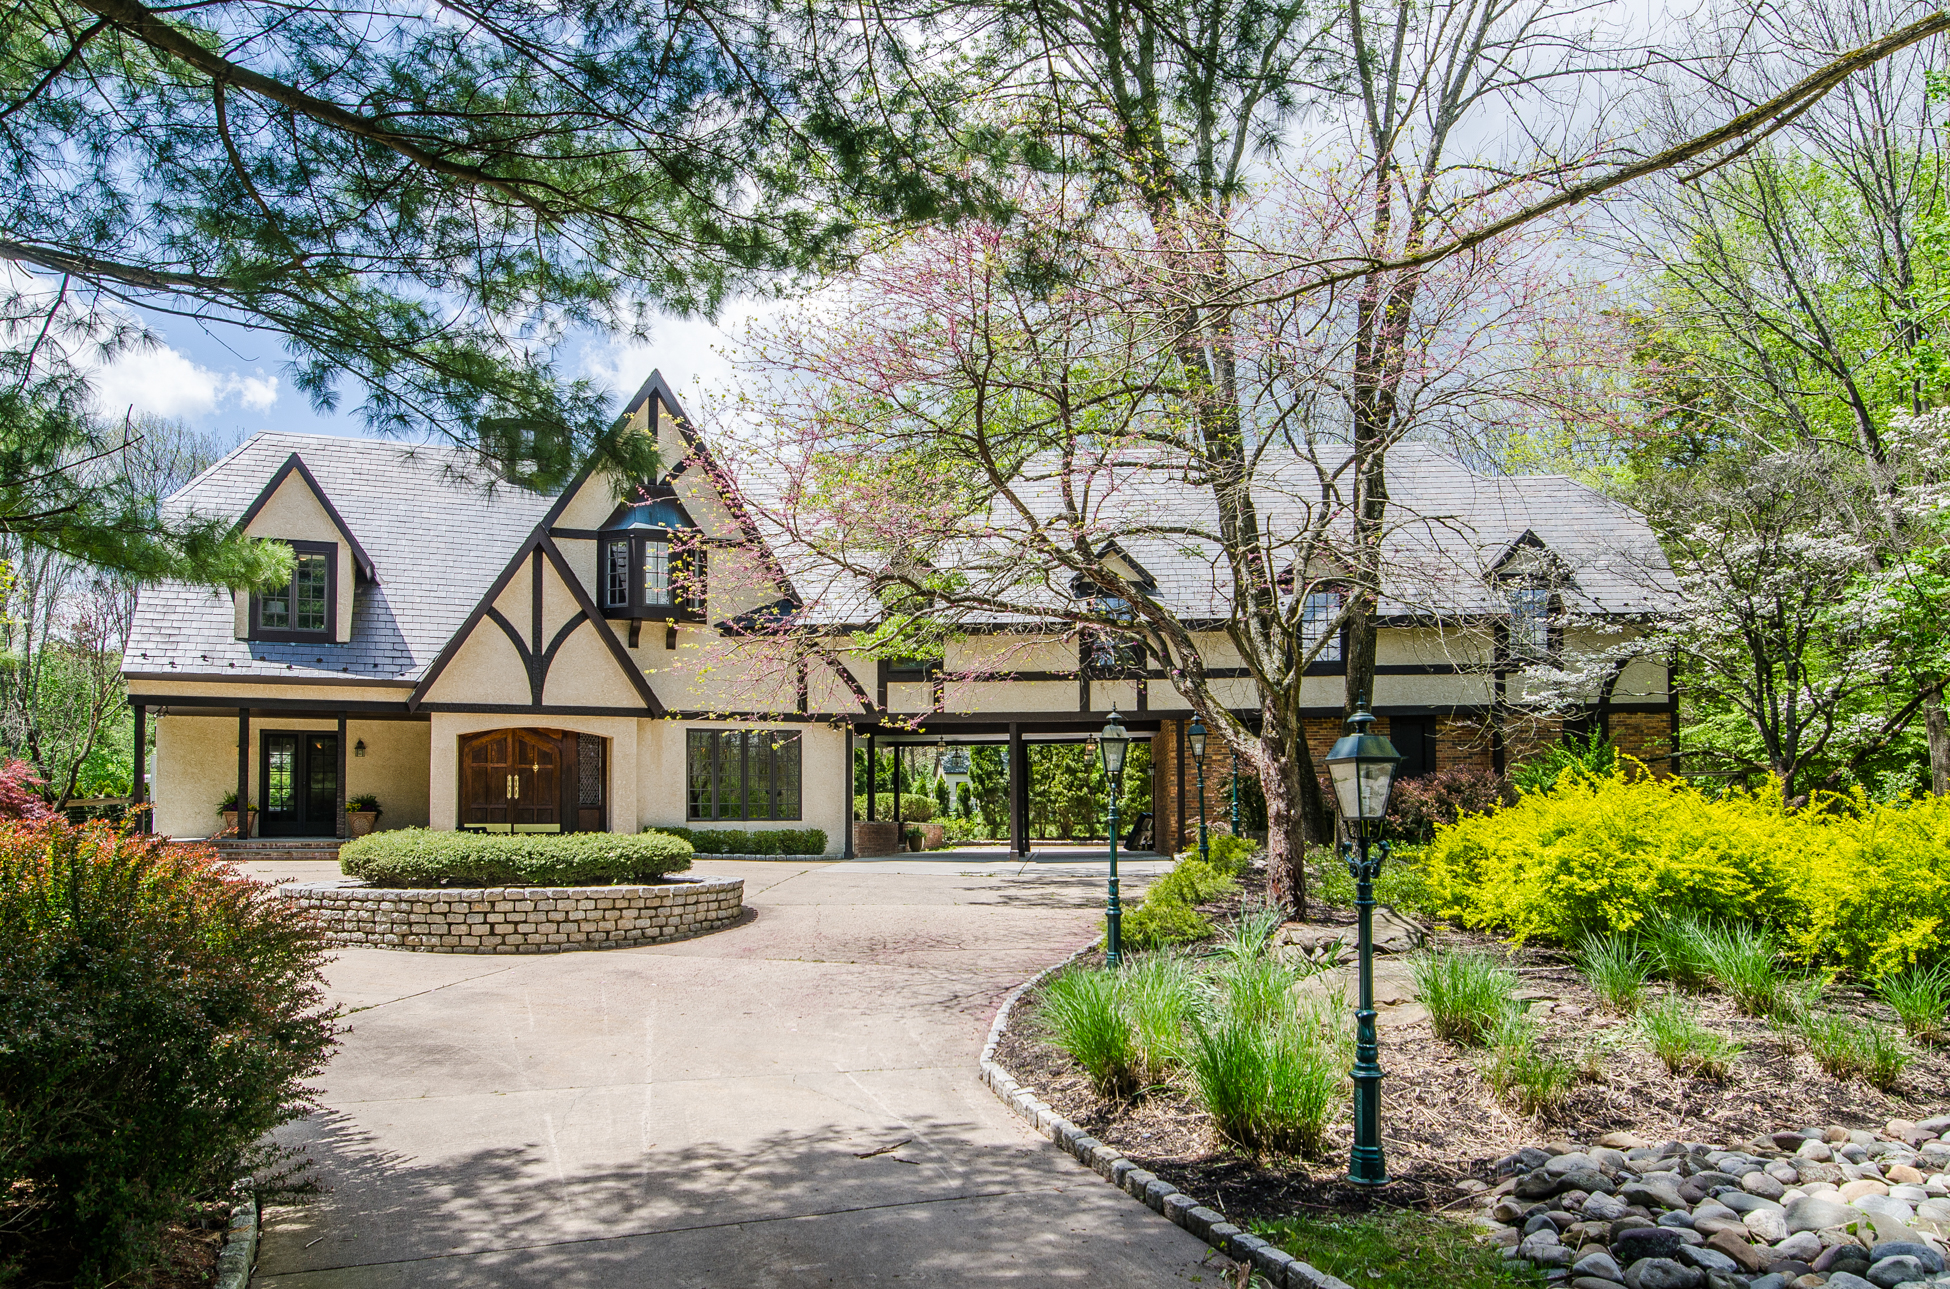 Single Family Home for Sale at A Tudor Exterior, A Modern Interior 86 Greenway Terrace Princeton, New Jersey, 08540 United States